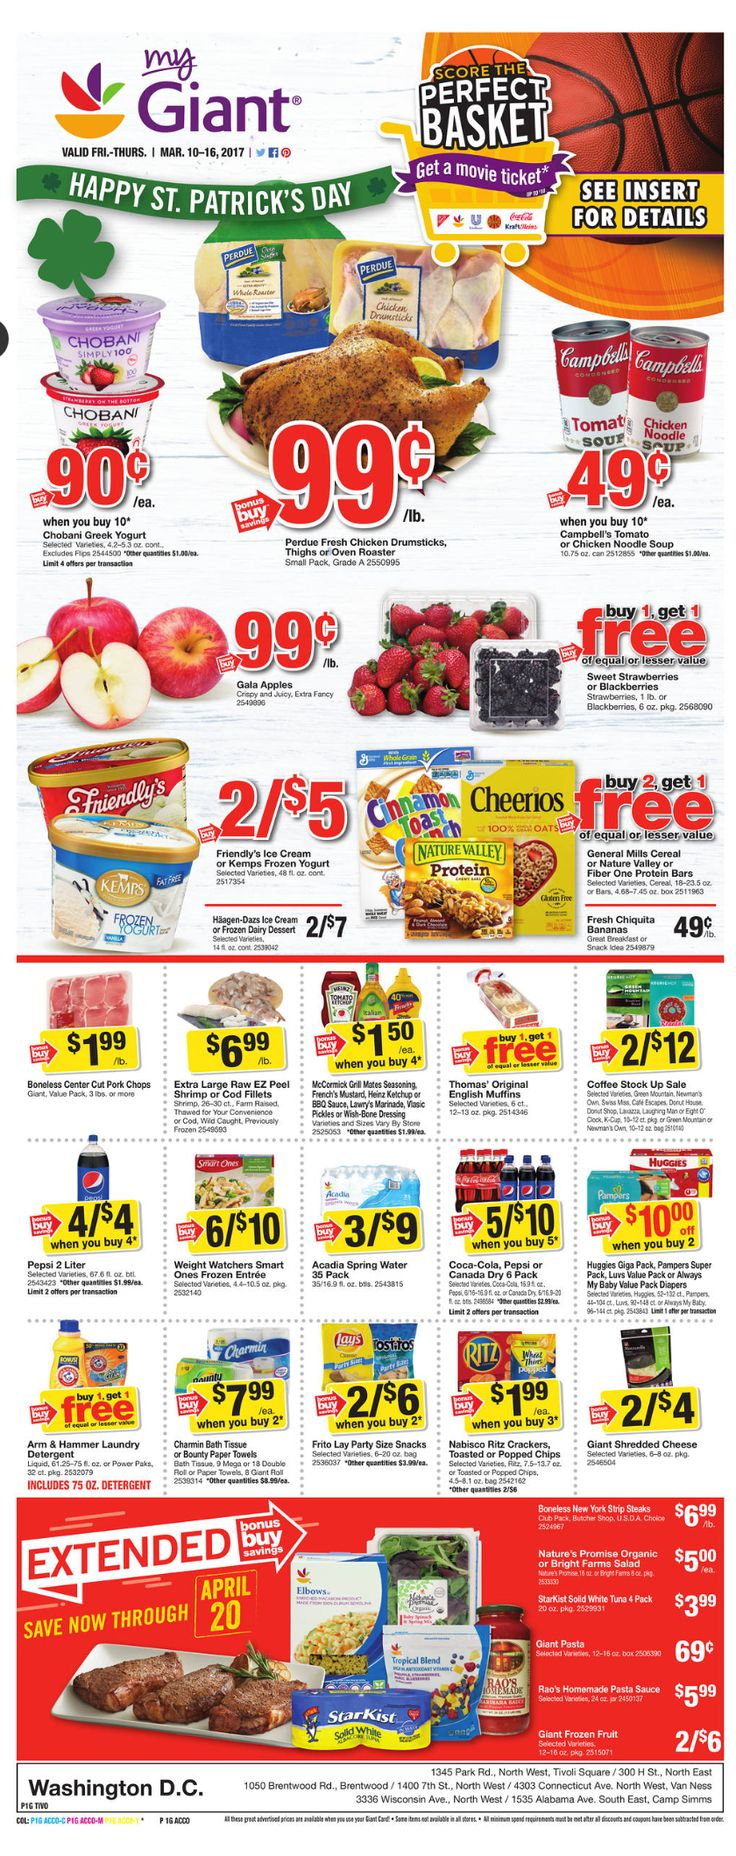 Giant Food Weekly Ad March 10 - 16, 2017 - http://www.olcatalog.com/grocery/giant-food-weekly-ad.html